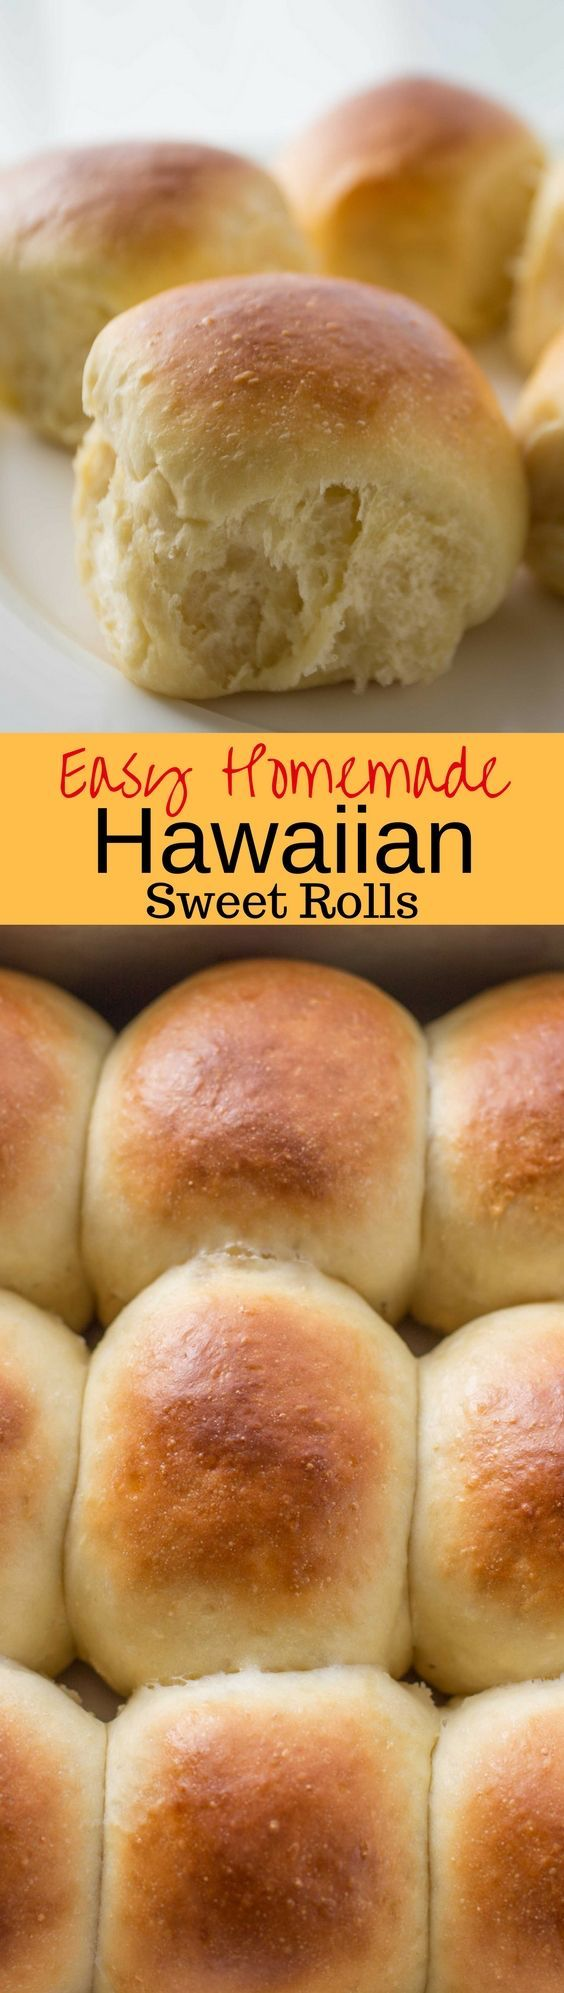 Easy Homemade Hawaiian Sweet Rolls -A lightly sweet roll flavored with pineapple juice for a hearty, fluffy, homemade treat that comes together in minutes.